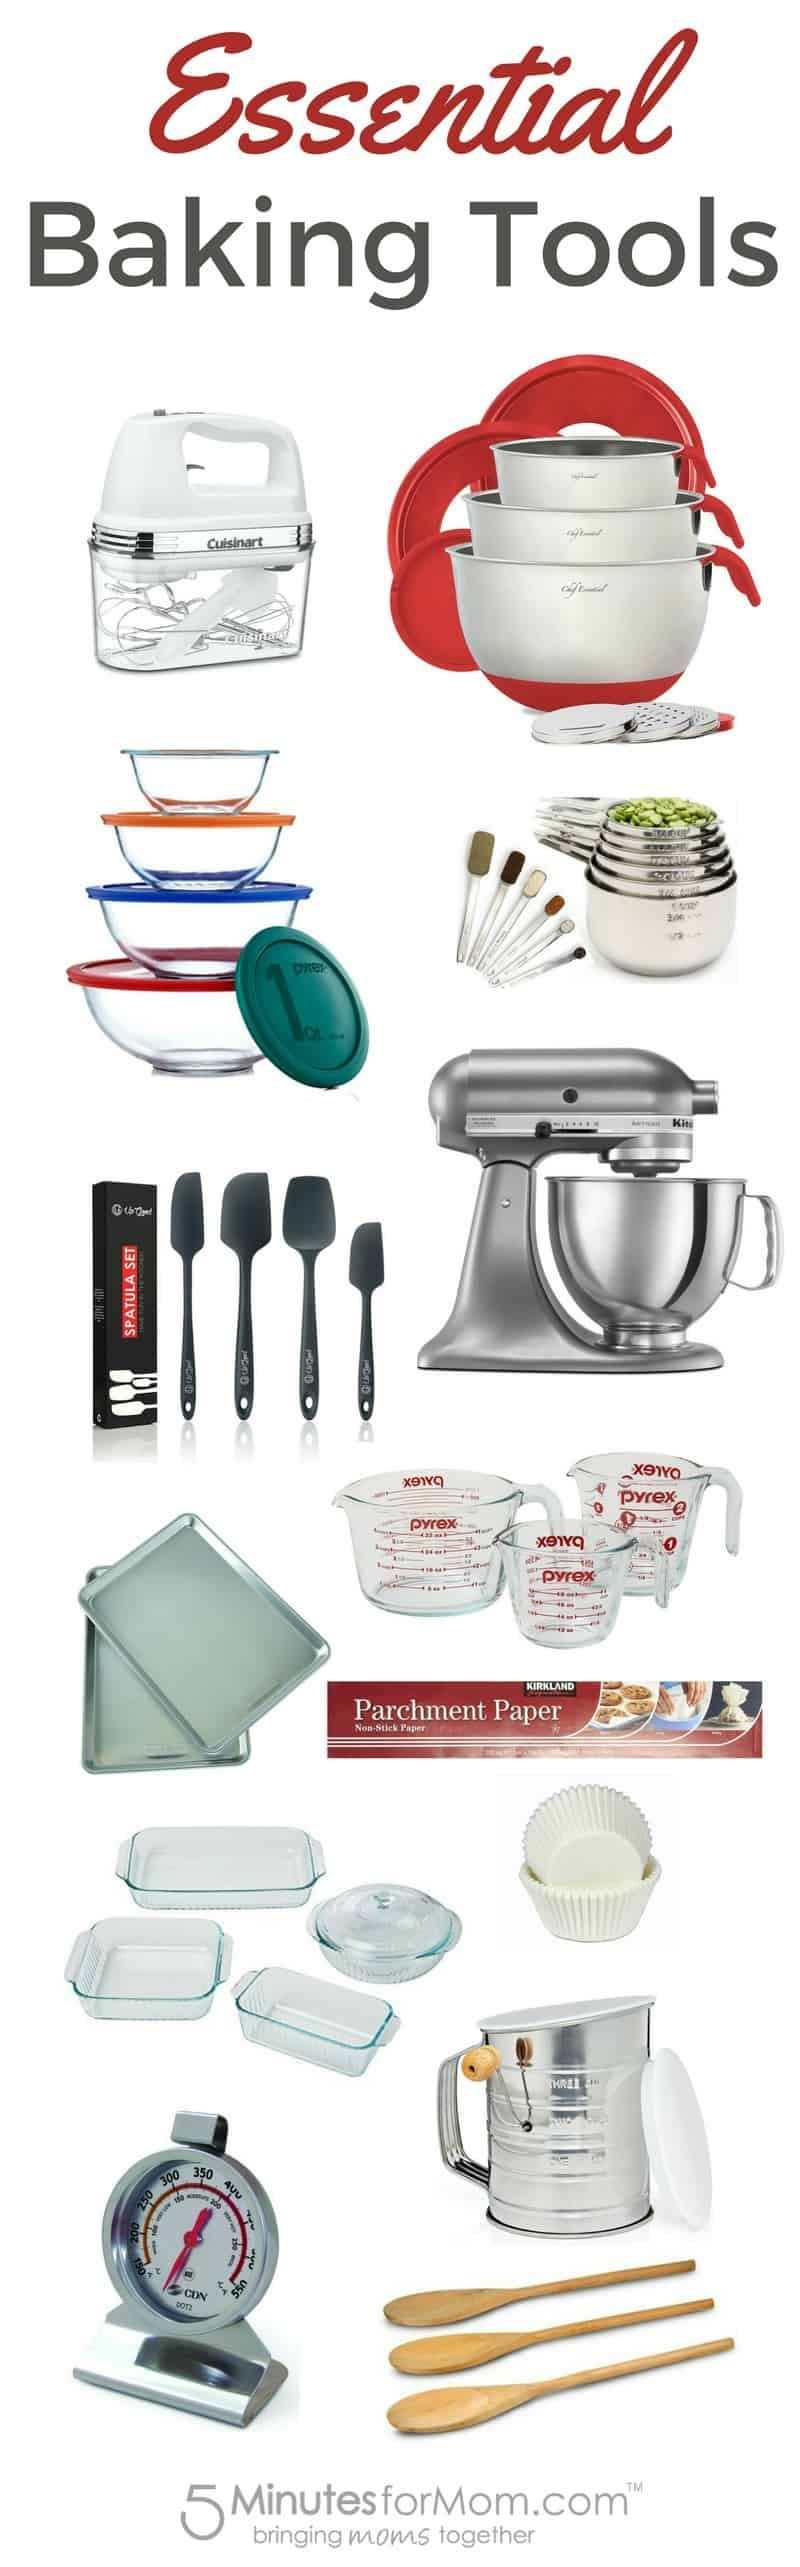 20 baking tools and equipments If you want the best baked goods, there are some important baking tools you should consider buying that will greatly improve the outcome of your recipes.